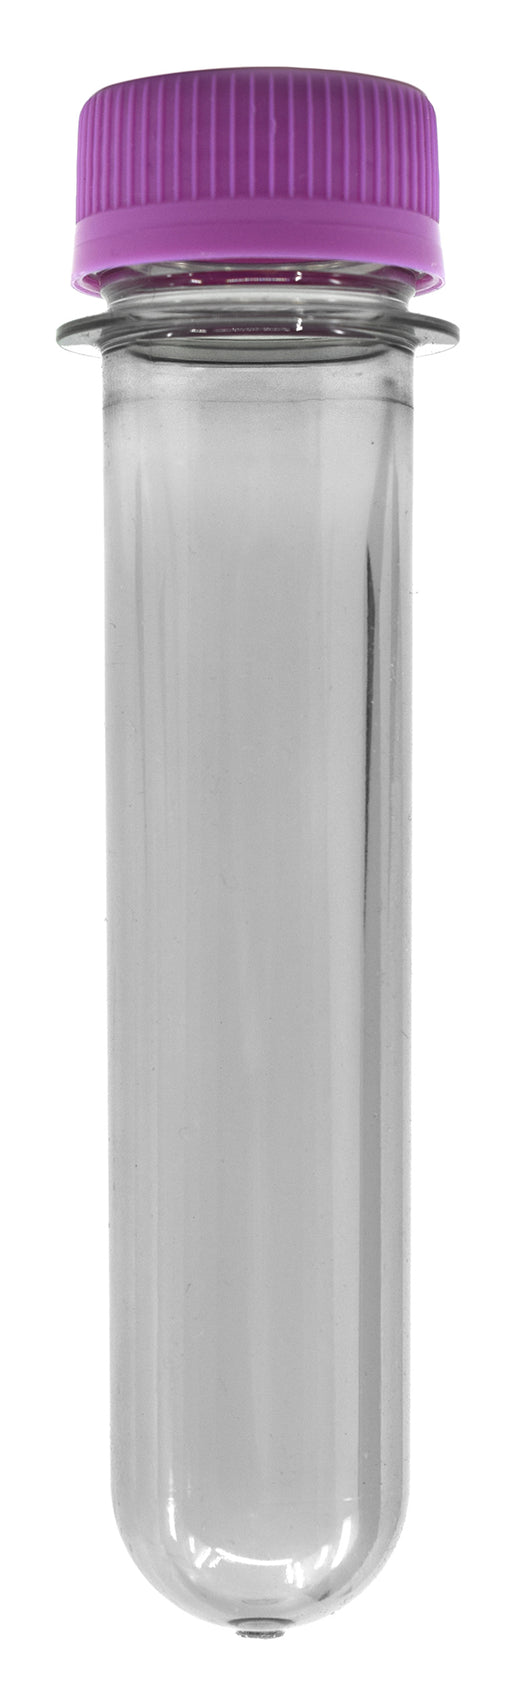 50PK Baby Soda Bottles with Caps, 25ml - Plastic Test Tubes - Polyethylene Terephthalate (PET) - Eisco Labs